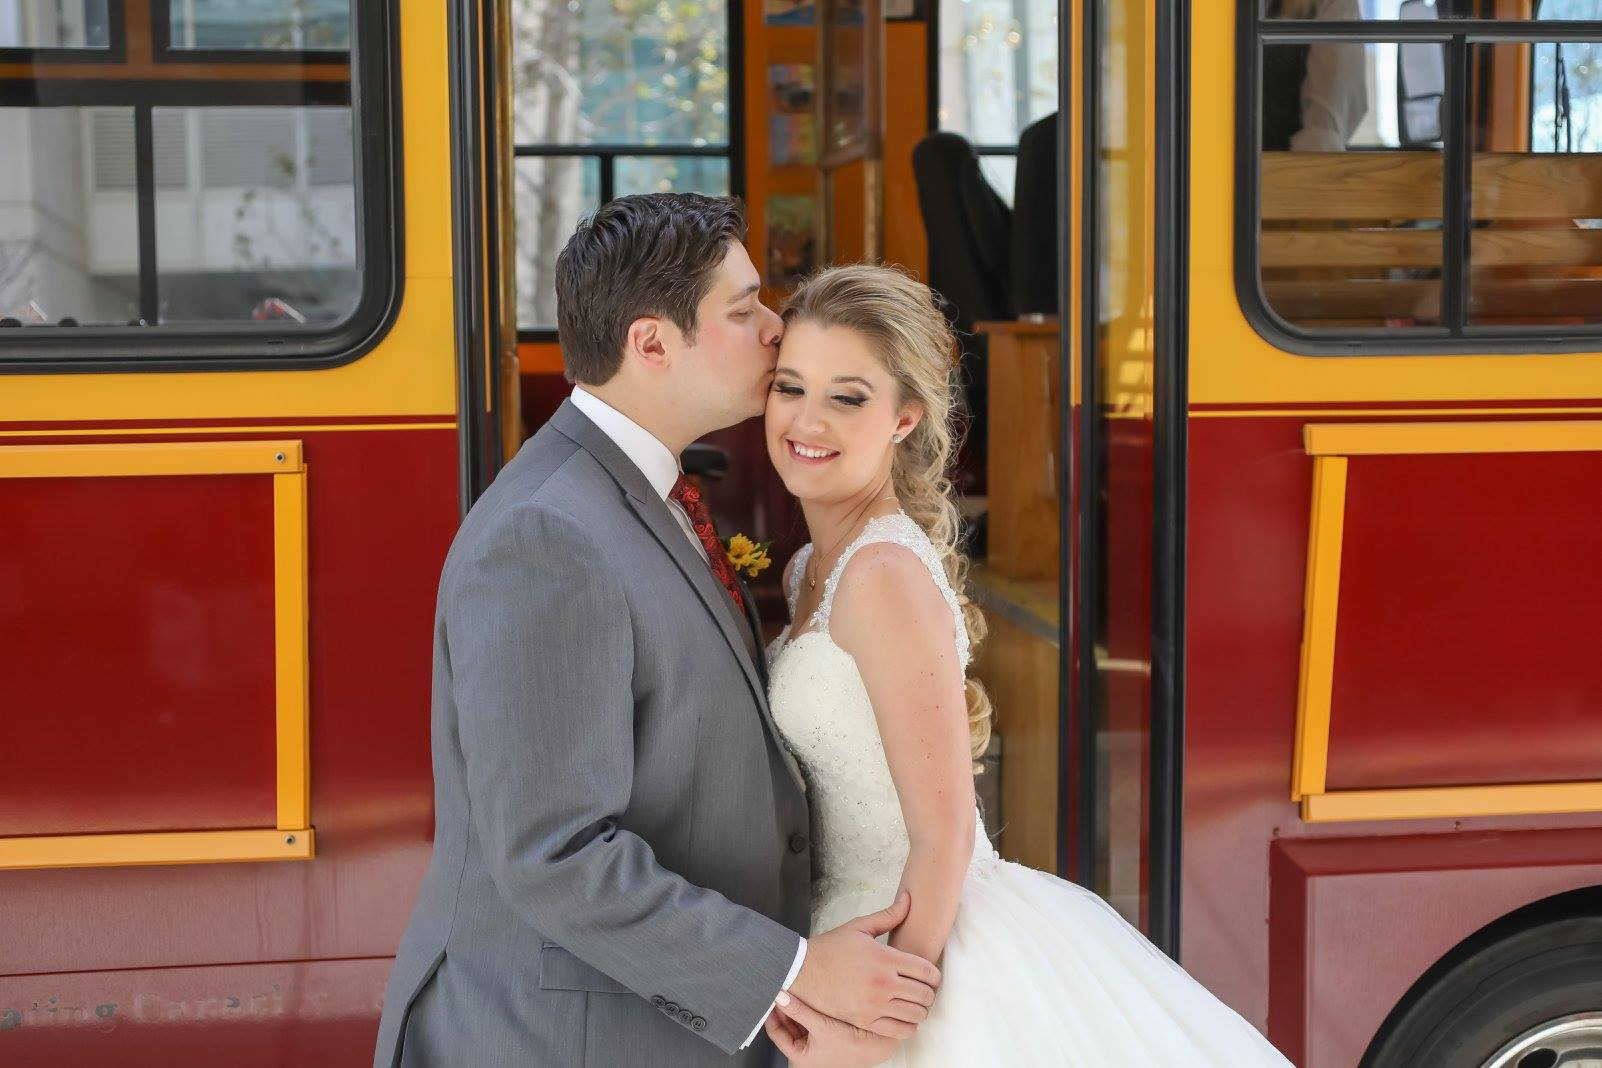 The couple made their way to the venue on an open air trolley traveling through Downtown Tampa.